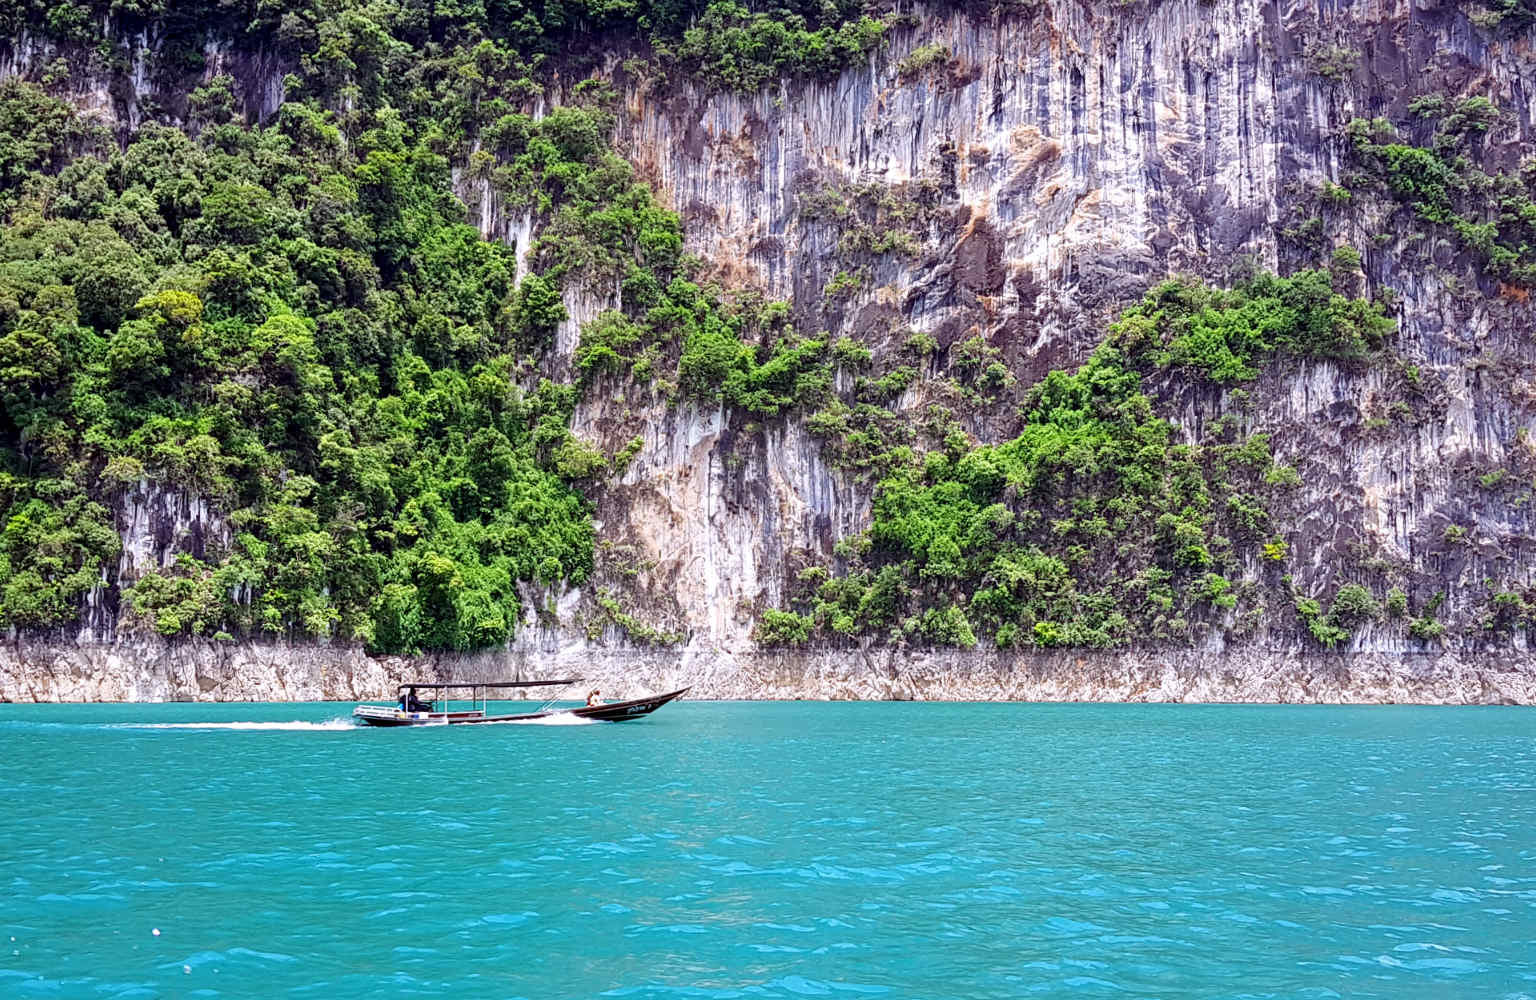 Cheow Lan Lake longtail boat in blue water and limestone cliffs